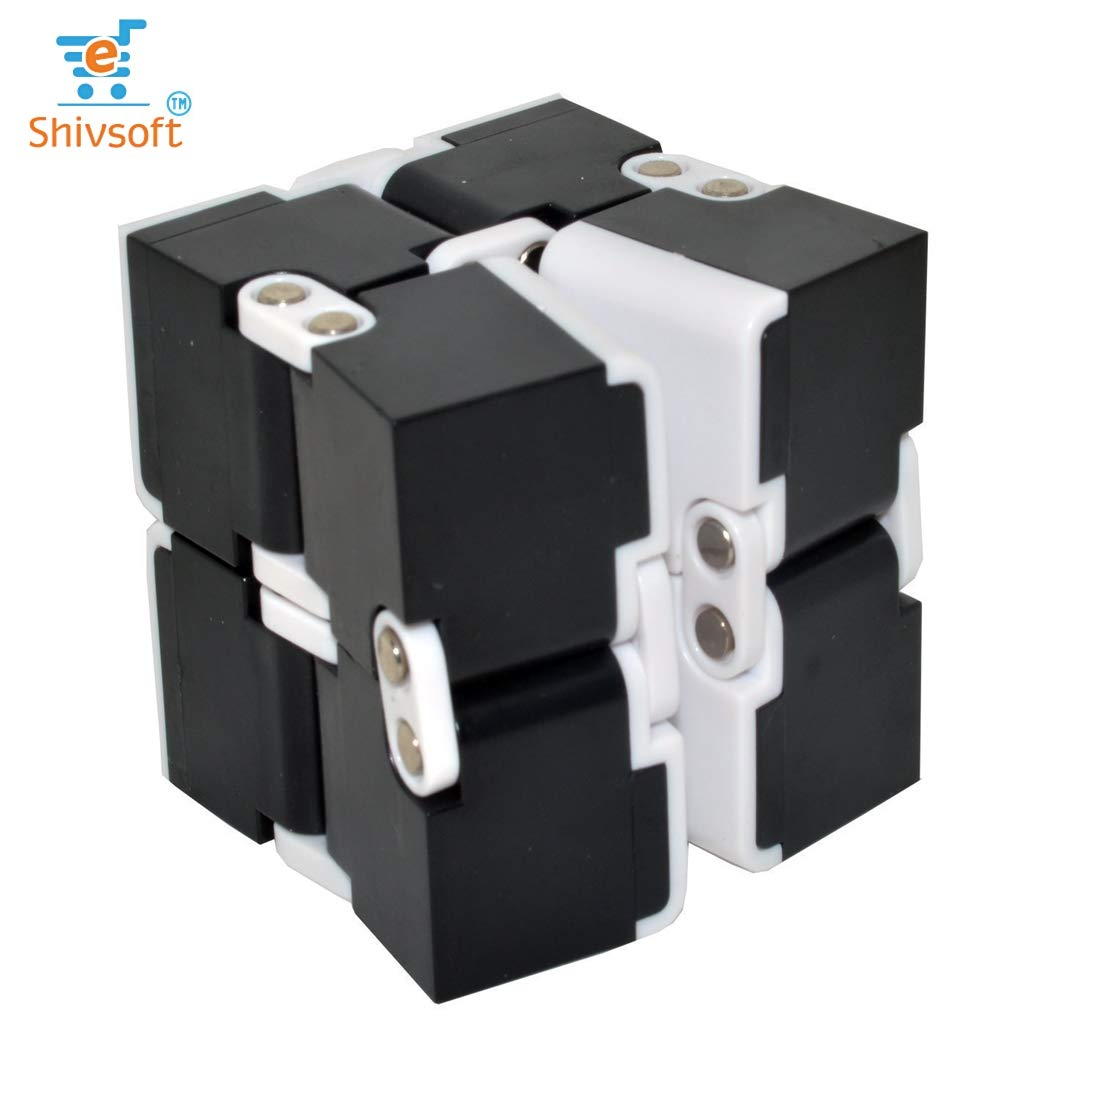 Infinity Cube Puzzle Decompression for Kids and Adults (White) by OK Seller (Image #1)